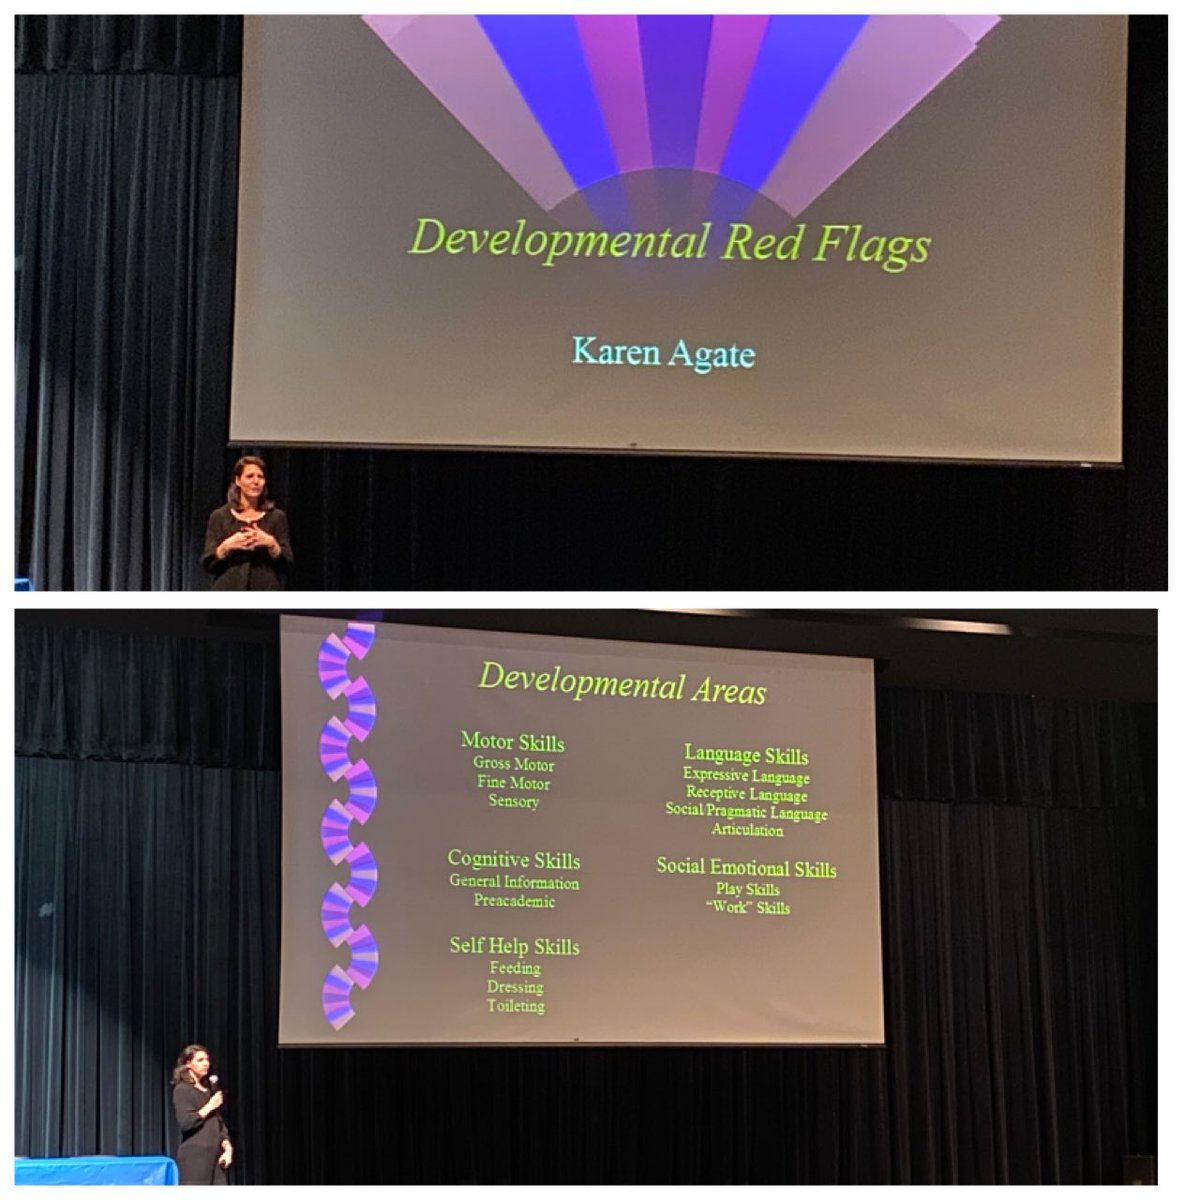 Thank you Karen Agate <a target='_blank' href='http://twitter.com/APS_childfind'>@APS_childfind</a> for helping us learn more about developmental red flags today <a target='_blank' href='http://twitter.com/kenmore'>@kenmore</a> <a target='_blank' href='http://twitter.com/KellyKrugOSE'>@KellyKrugOSE</a> <a target='_blank' href='http://twitter.com/APS_SLPS'>@APS_SLPS</a> <a target='_blank' href='http://twitter.com/APSVirginia'>@APSVirginia</a> <a target='_blank' href='https://t.co/PJS5I2PszM'>https://t.co/PJS5I2PszM</a>